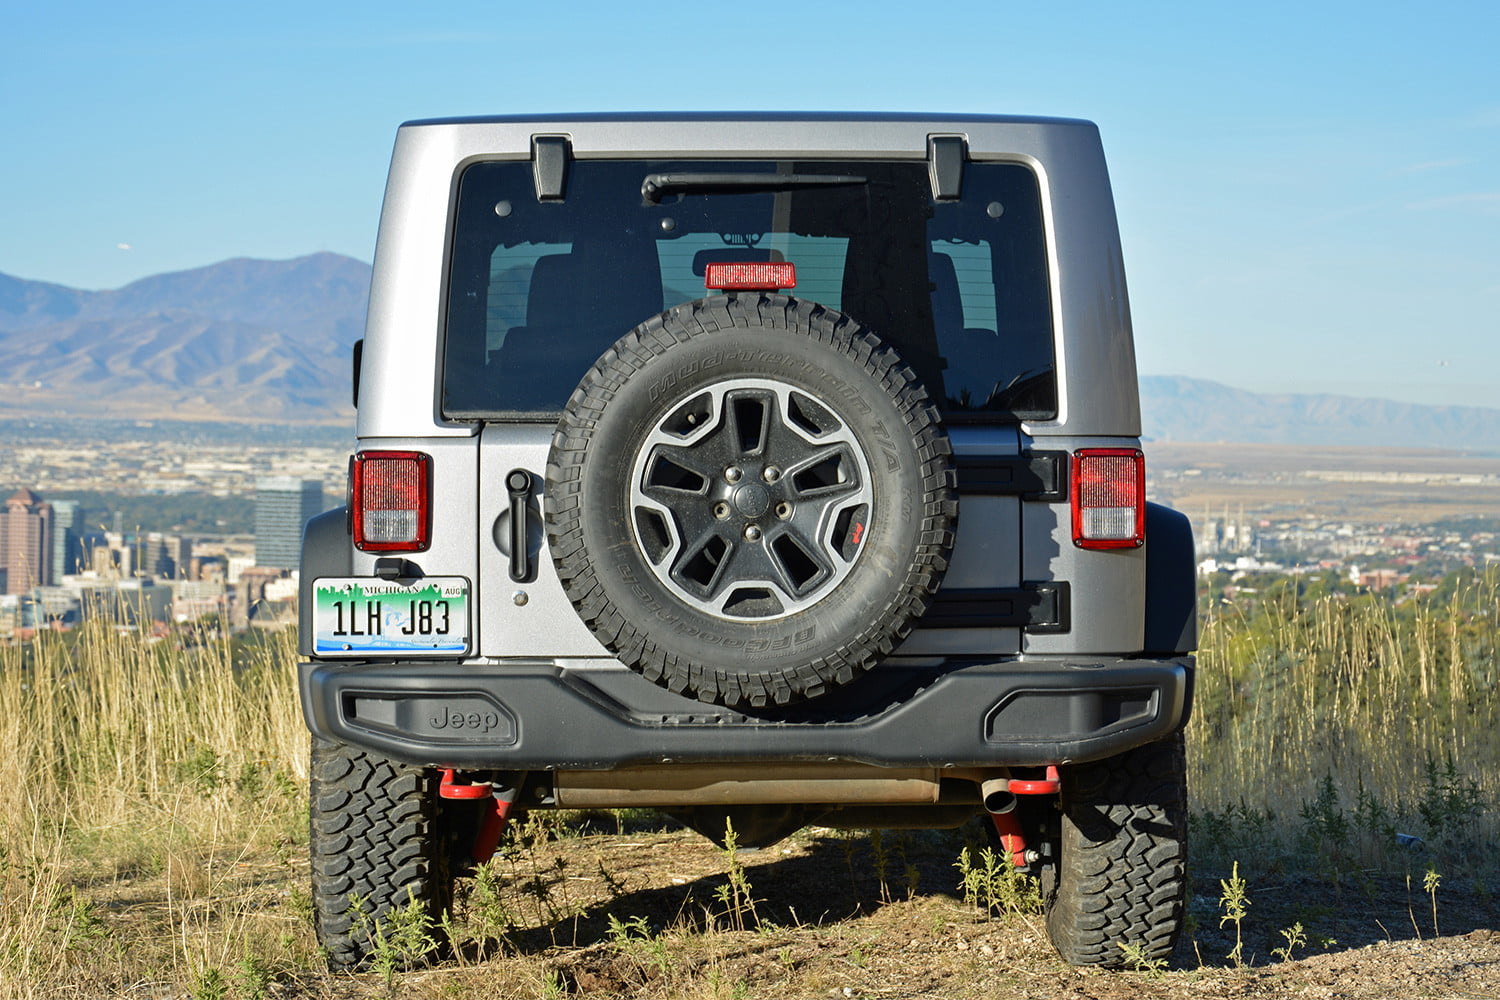 Jeep Yj Wiring Harness Ebay 2016 Wrangler Rubicon Review Specs Photos Digital Trends Hard Rock